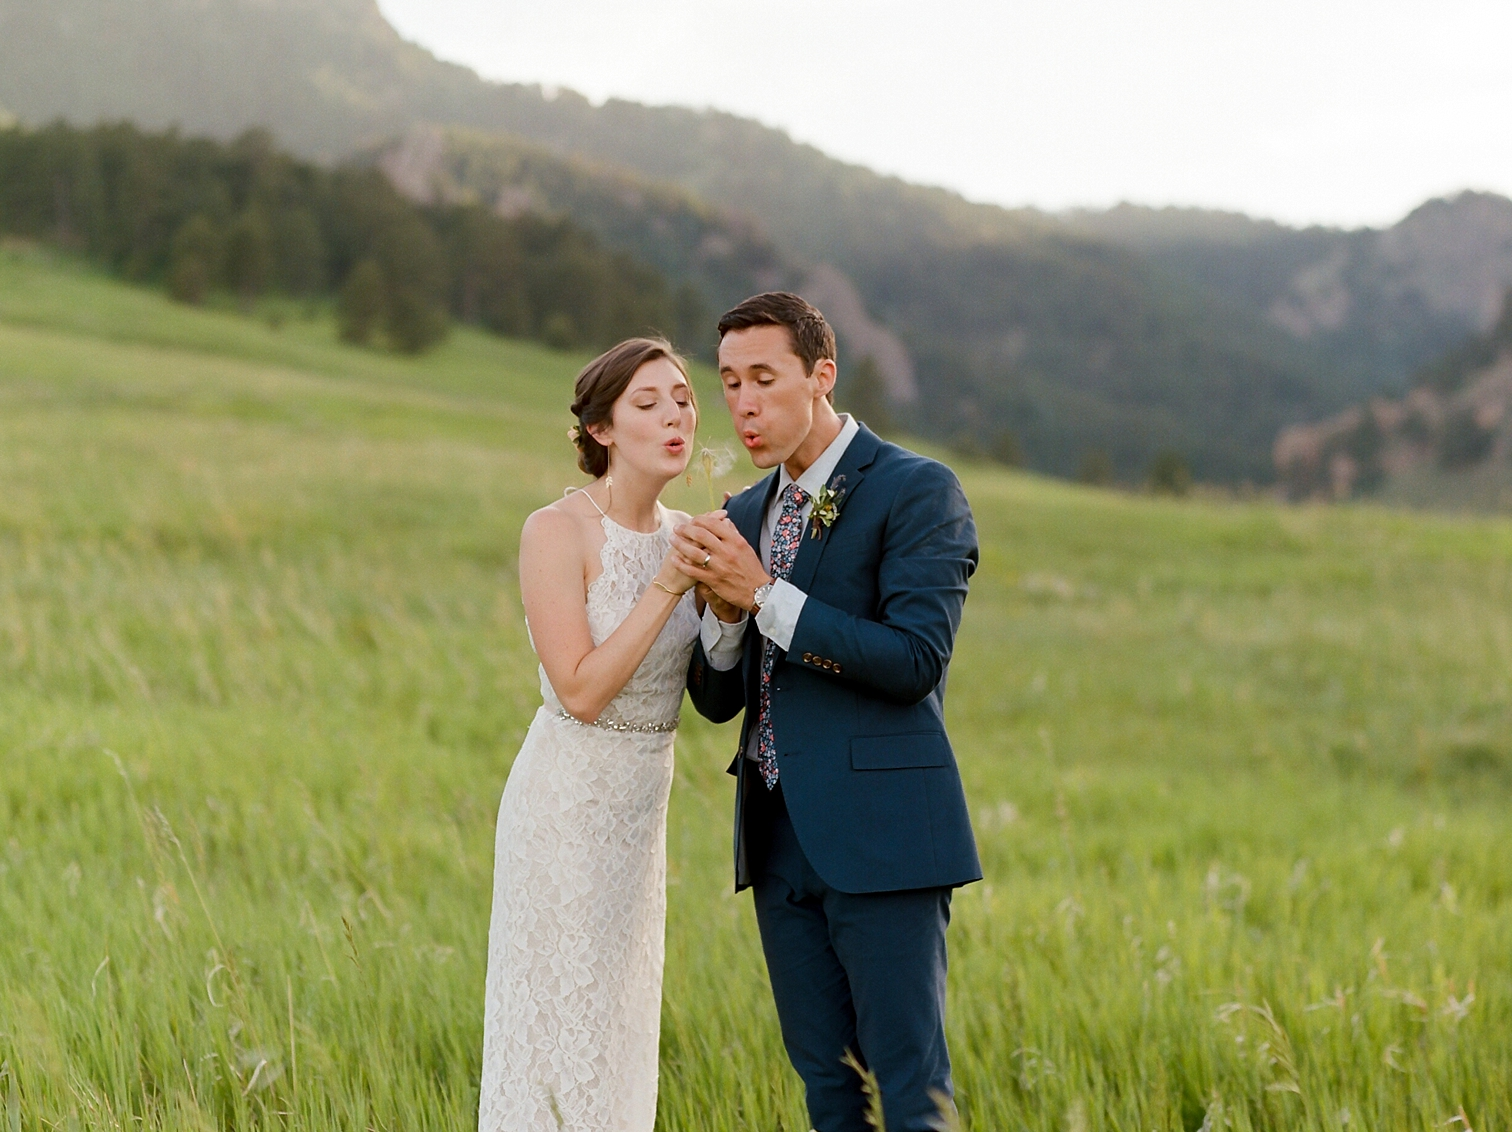 Outdoor Wedding Portraits, Colorado Mountain Weddings, Danielle DeFiore Photographer, Destination Wedding Photographers, Weddings in Boulder Colorado, Outdoor Ceremony, Film Photographer, Summer Weddings, Bride And Groom Walking In Fields